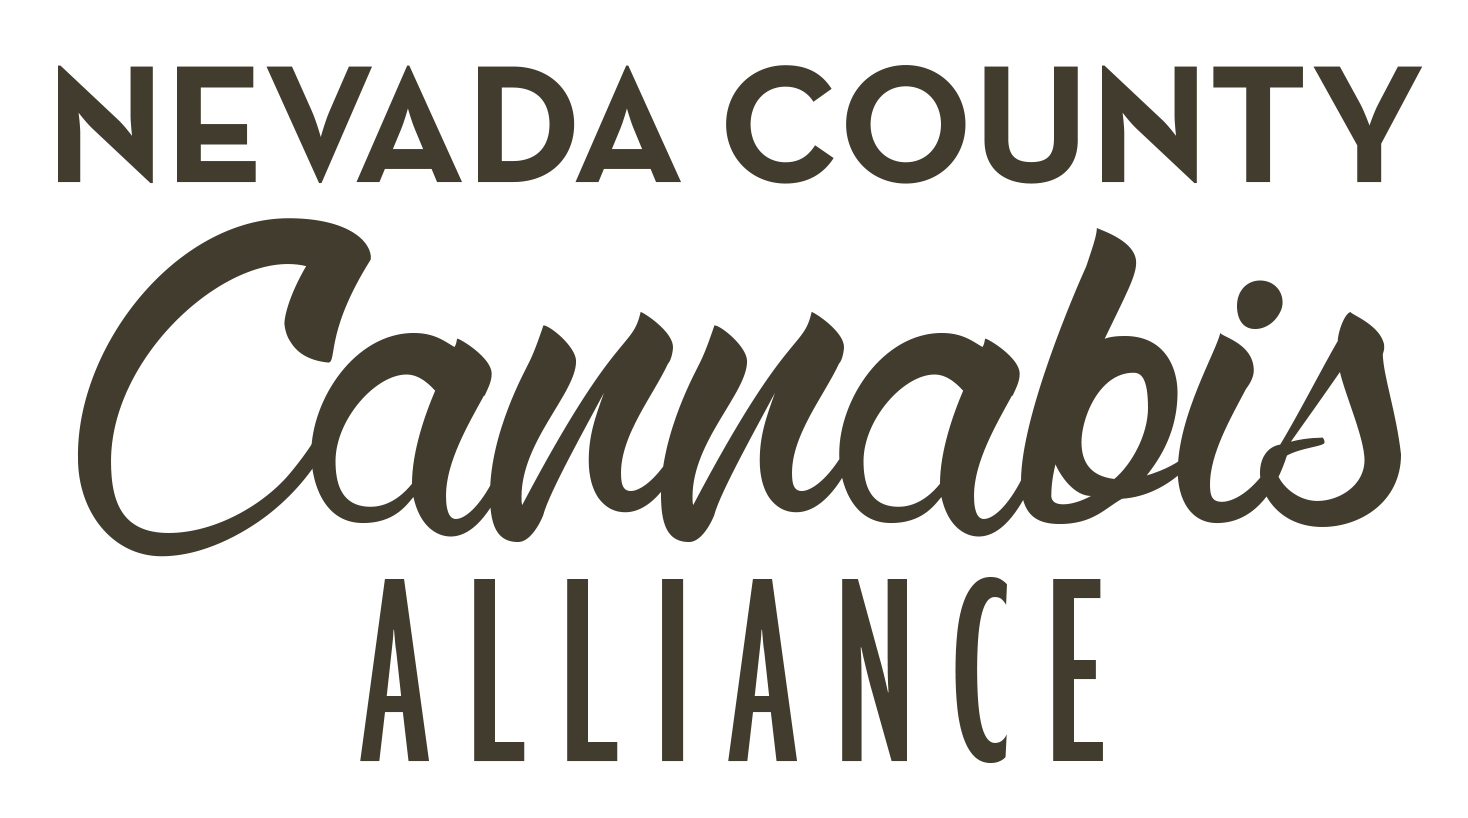 Nevada County Cannabis Alliance